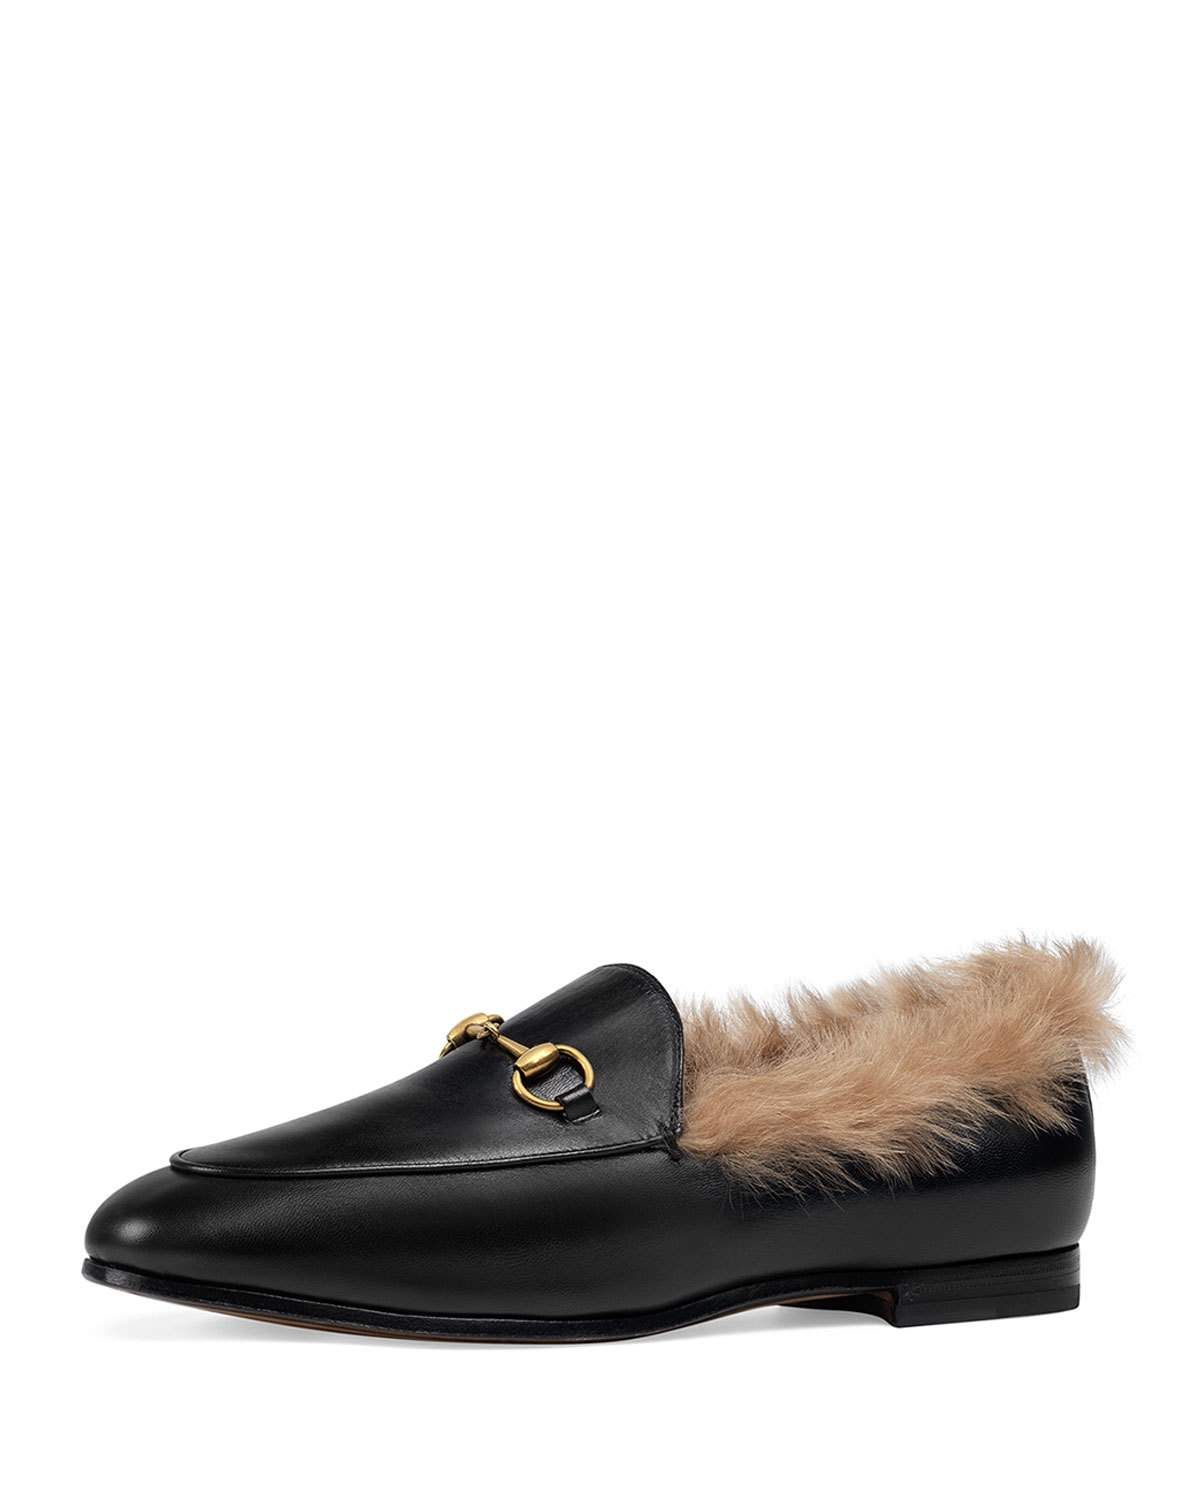 dc2f9db623a 10mm Jordaan Leather And Fur Loafer in 2018